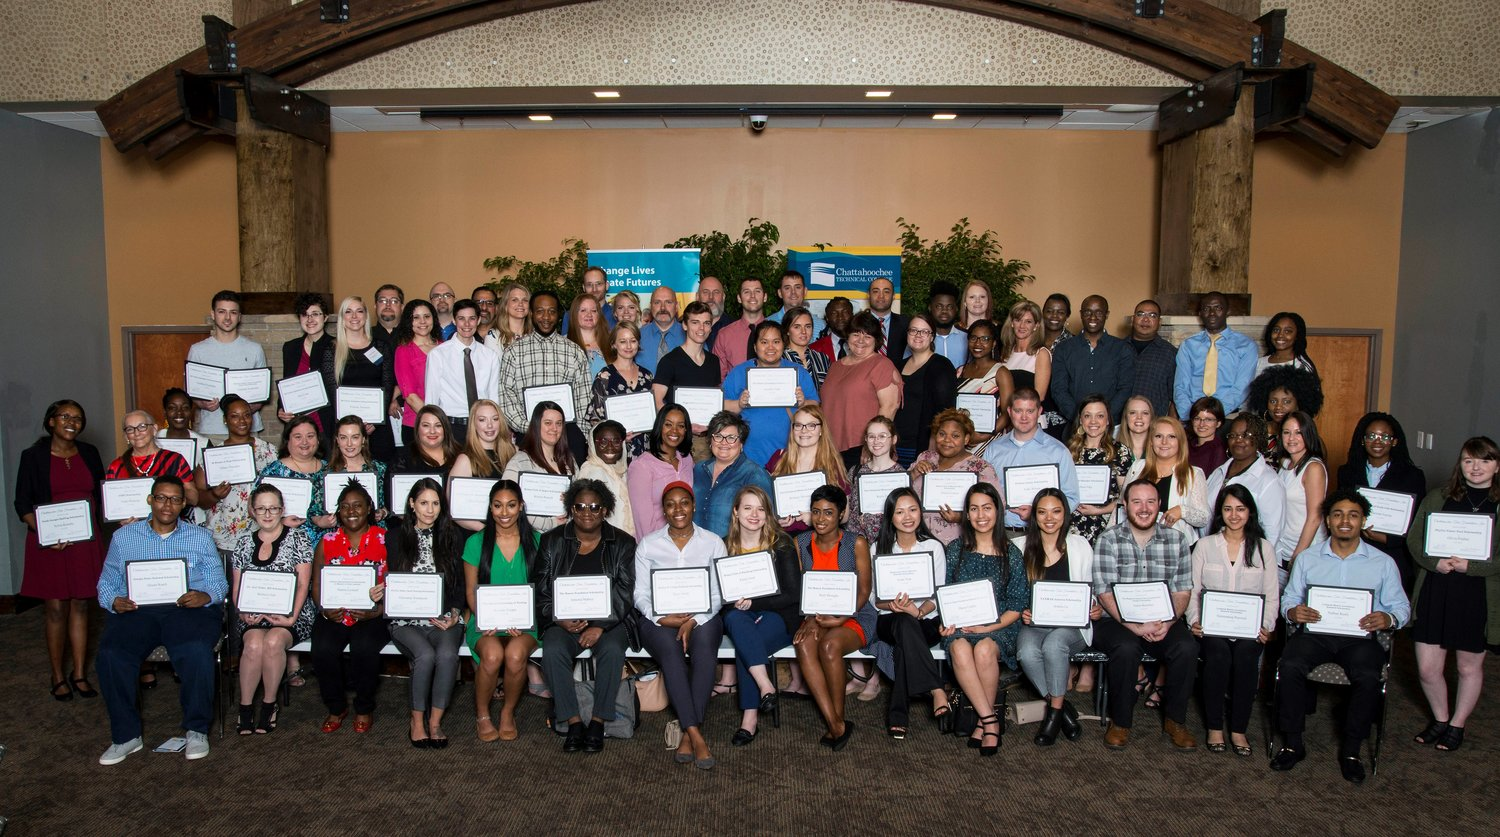 Five students from Bartow County were among the Chattahoochee Tech Foundation scholarship recipients honored at an awards luncheon at Chattahoochee Tech's North Metro campus in Acworth April 12.